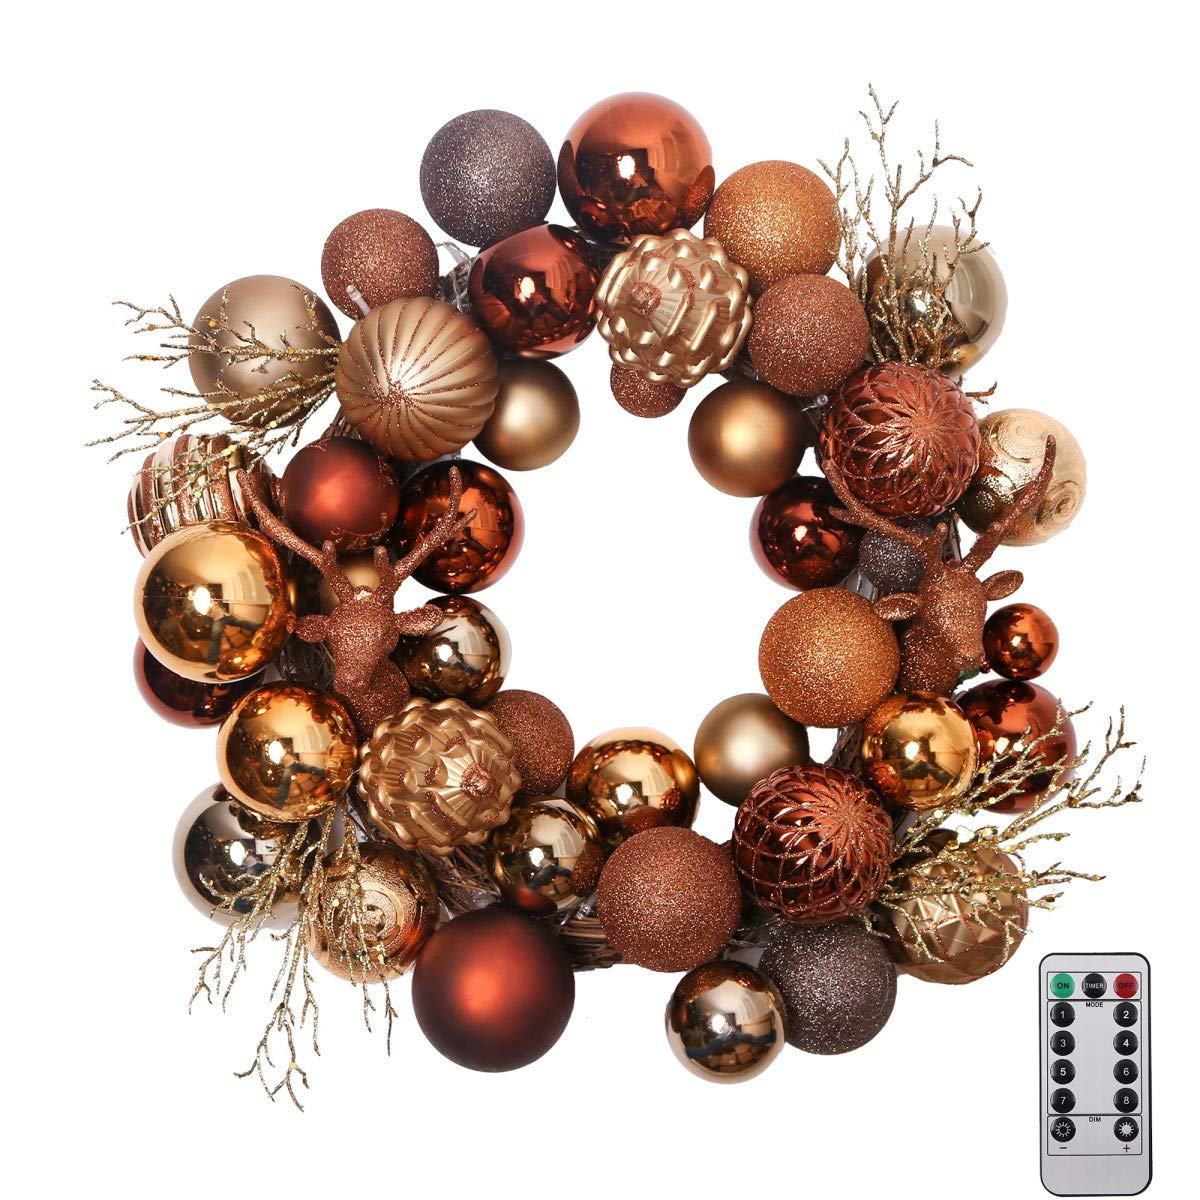 Valery Madelyn 20'' Pre-Lit Woodland Christmas Wreath with Shatterproof Ball Ornaments, Rattan Base with 20 LED Lights, Remote and Timer Included, Themed with Tree Skirt(Not Included)